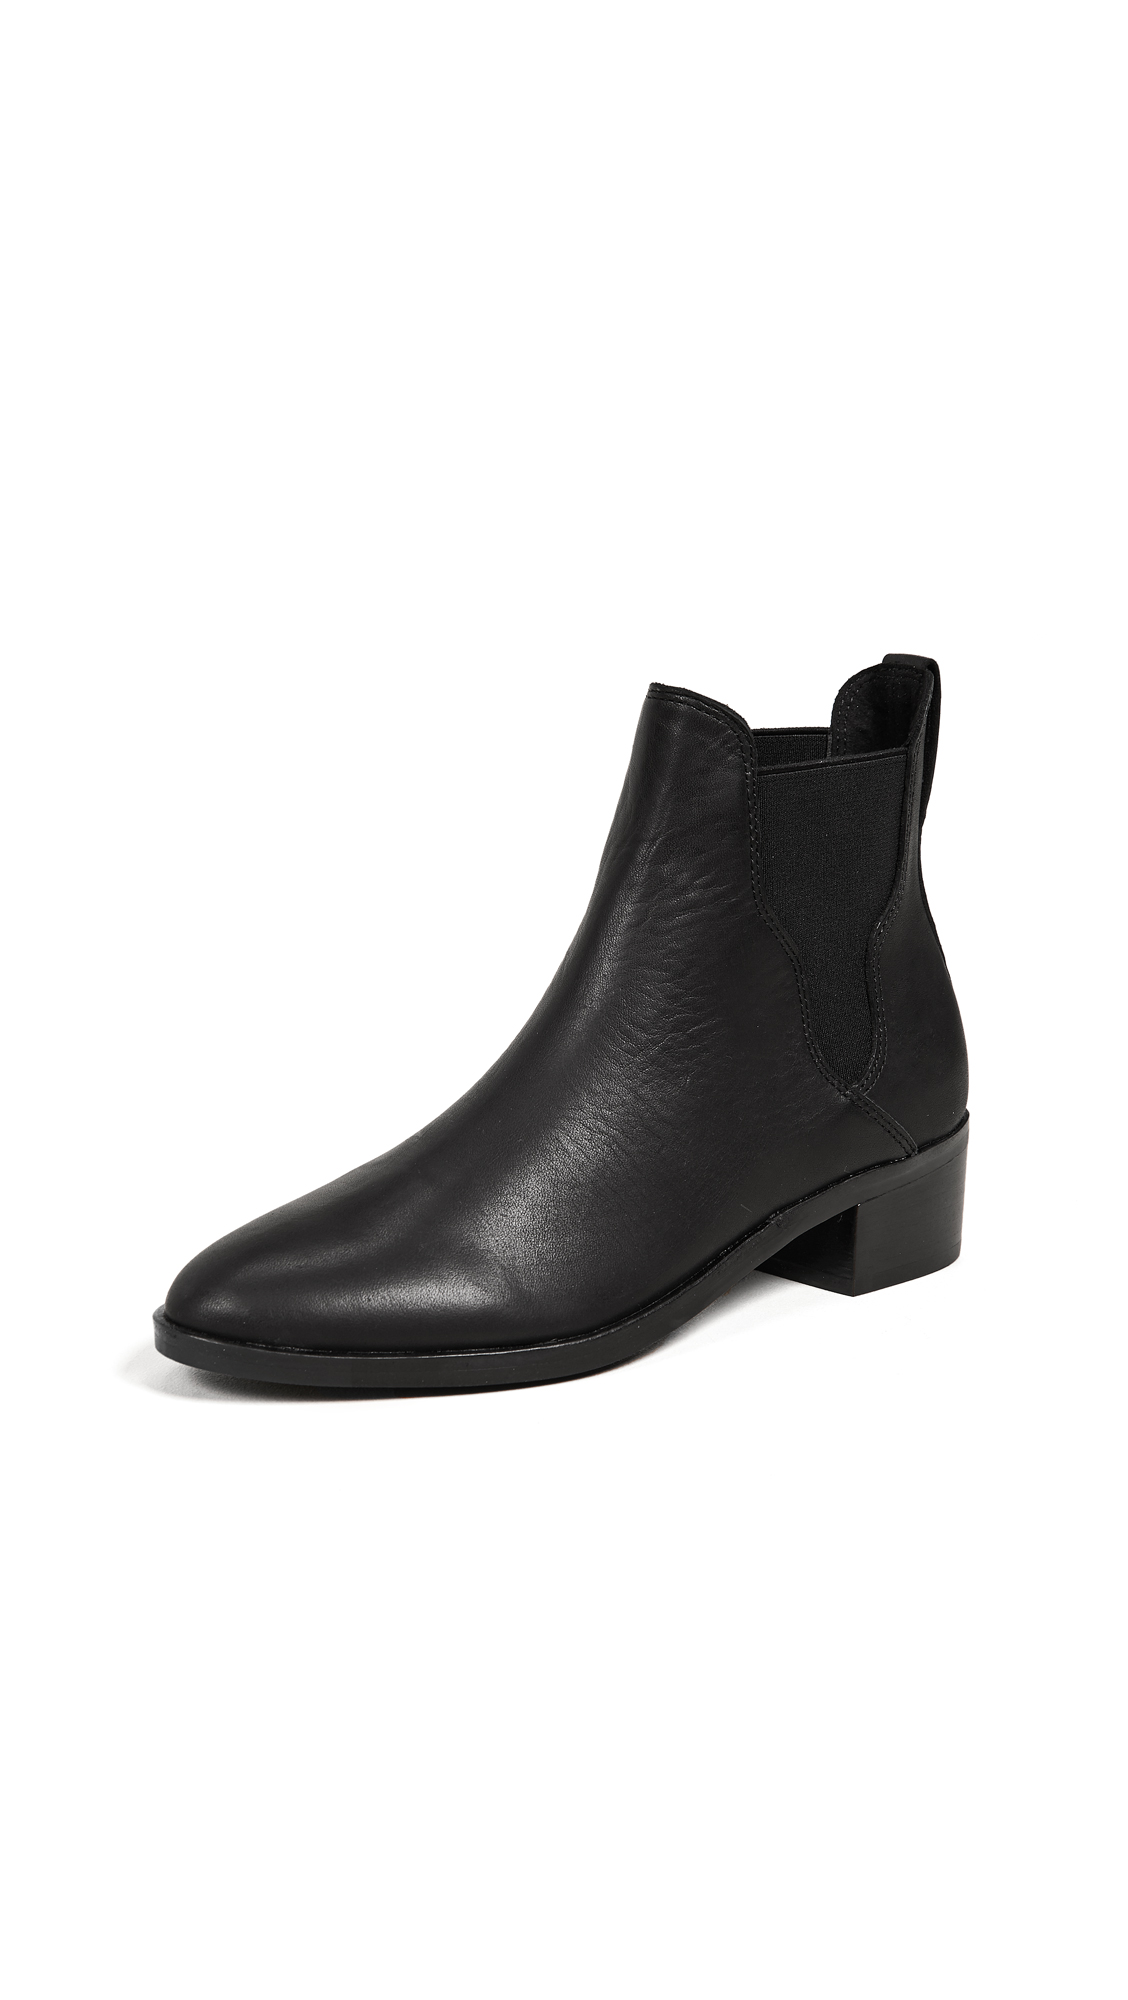 Soludos Marfa Leather Chelsea Booties - Black